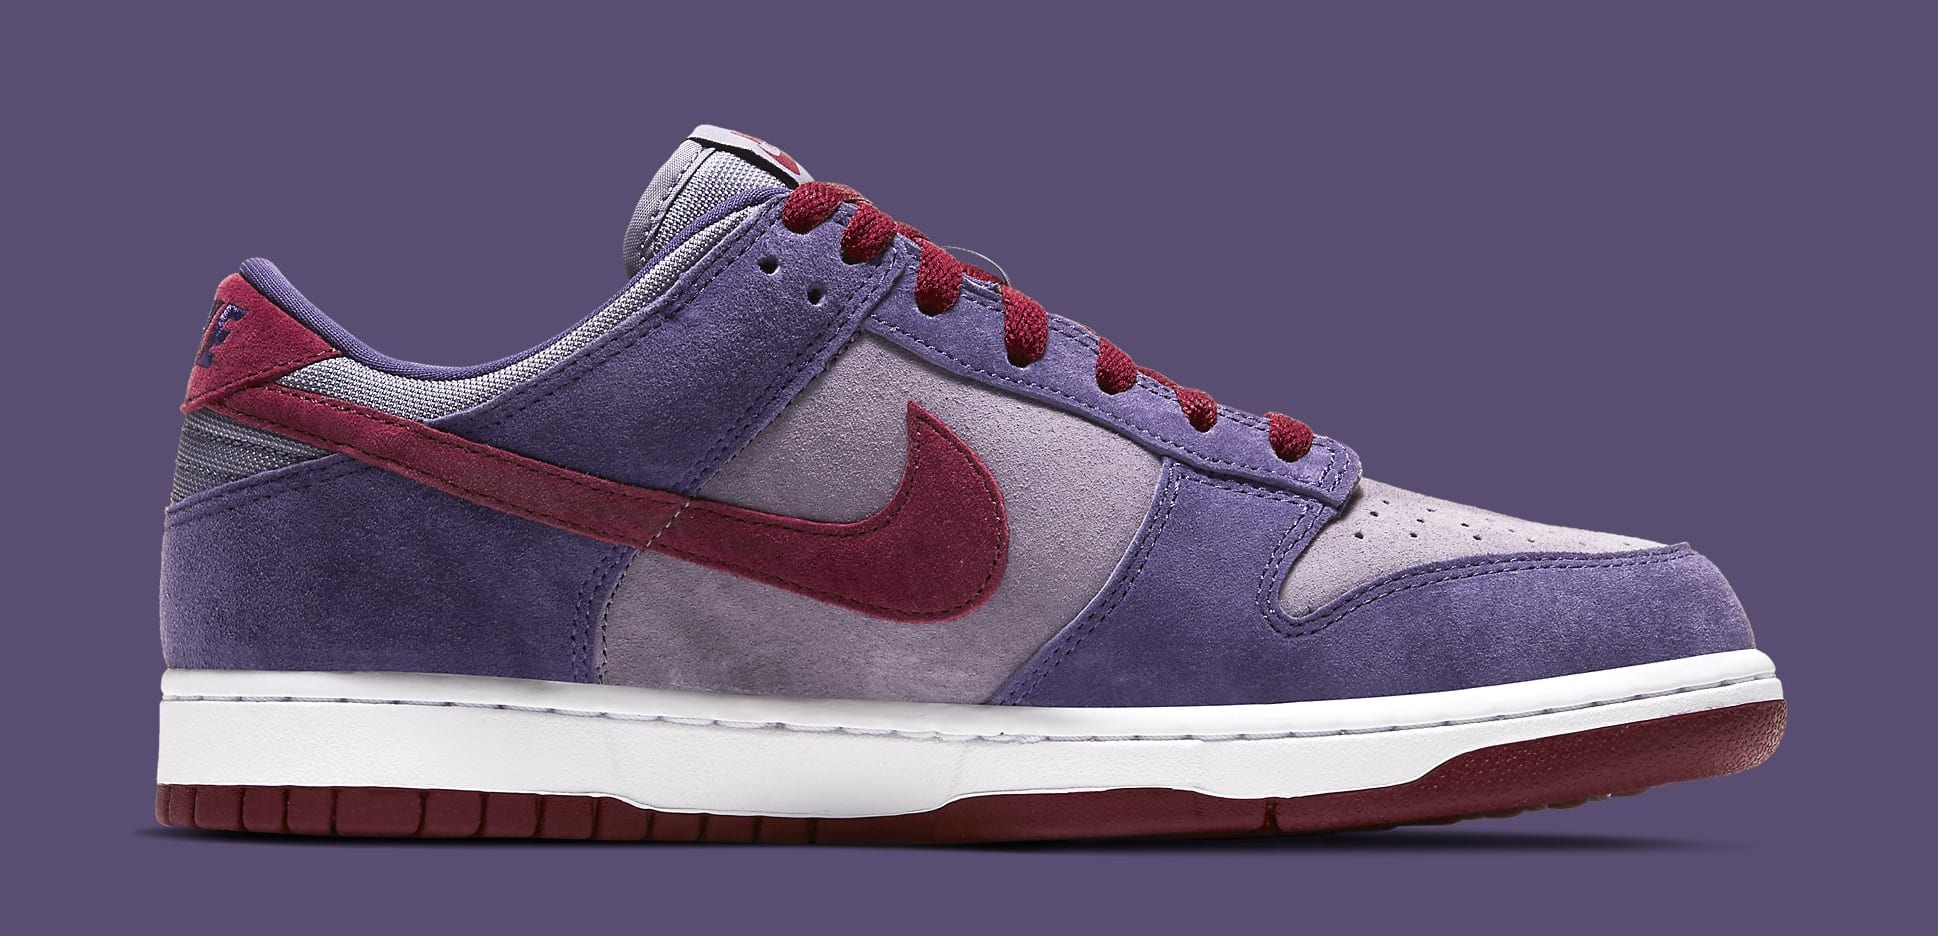 nike-dunk-low-plum-2020-cu1726-500-medial